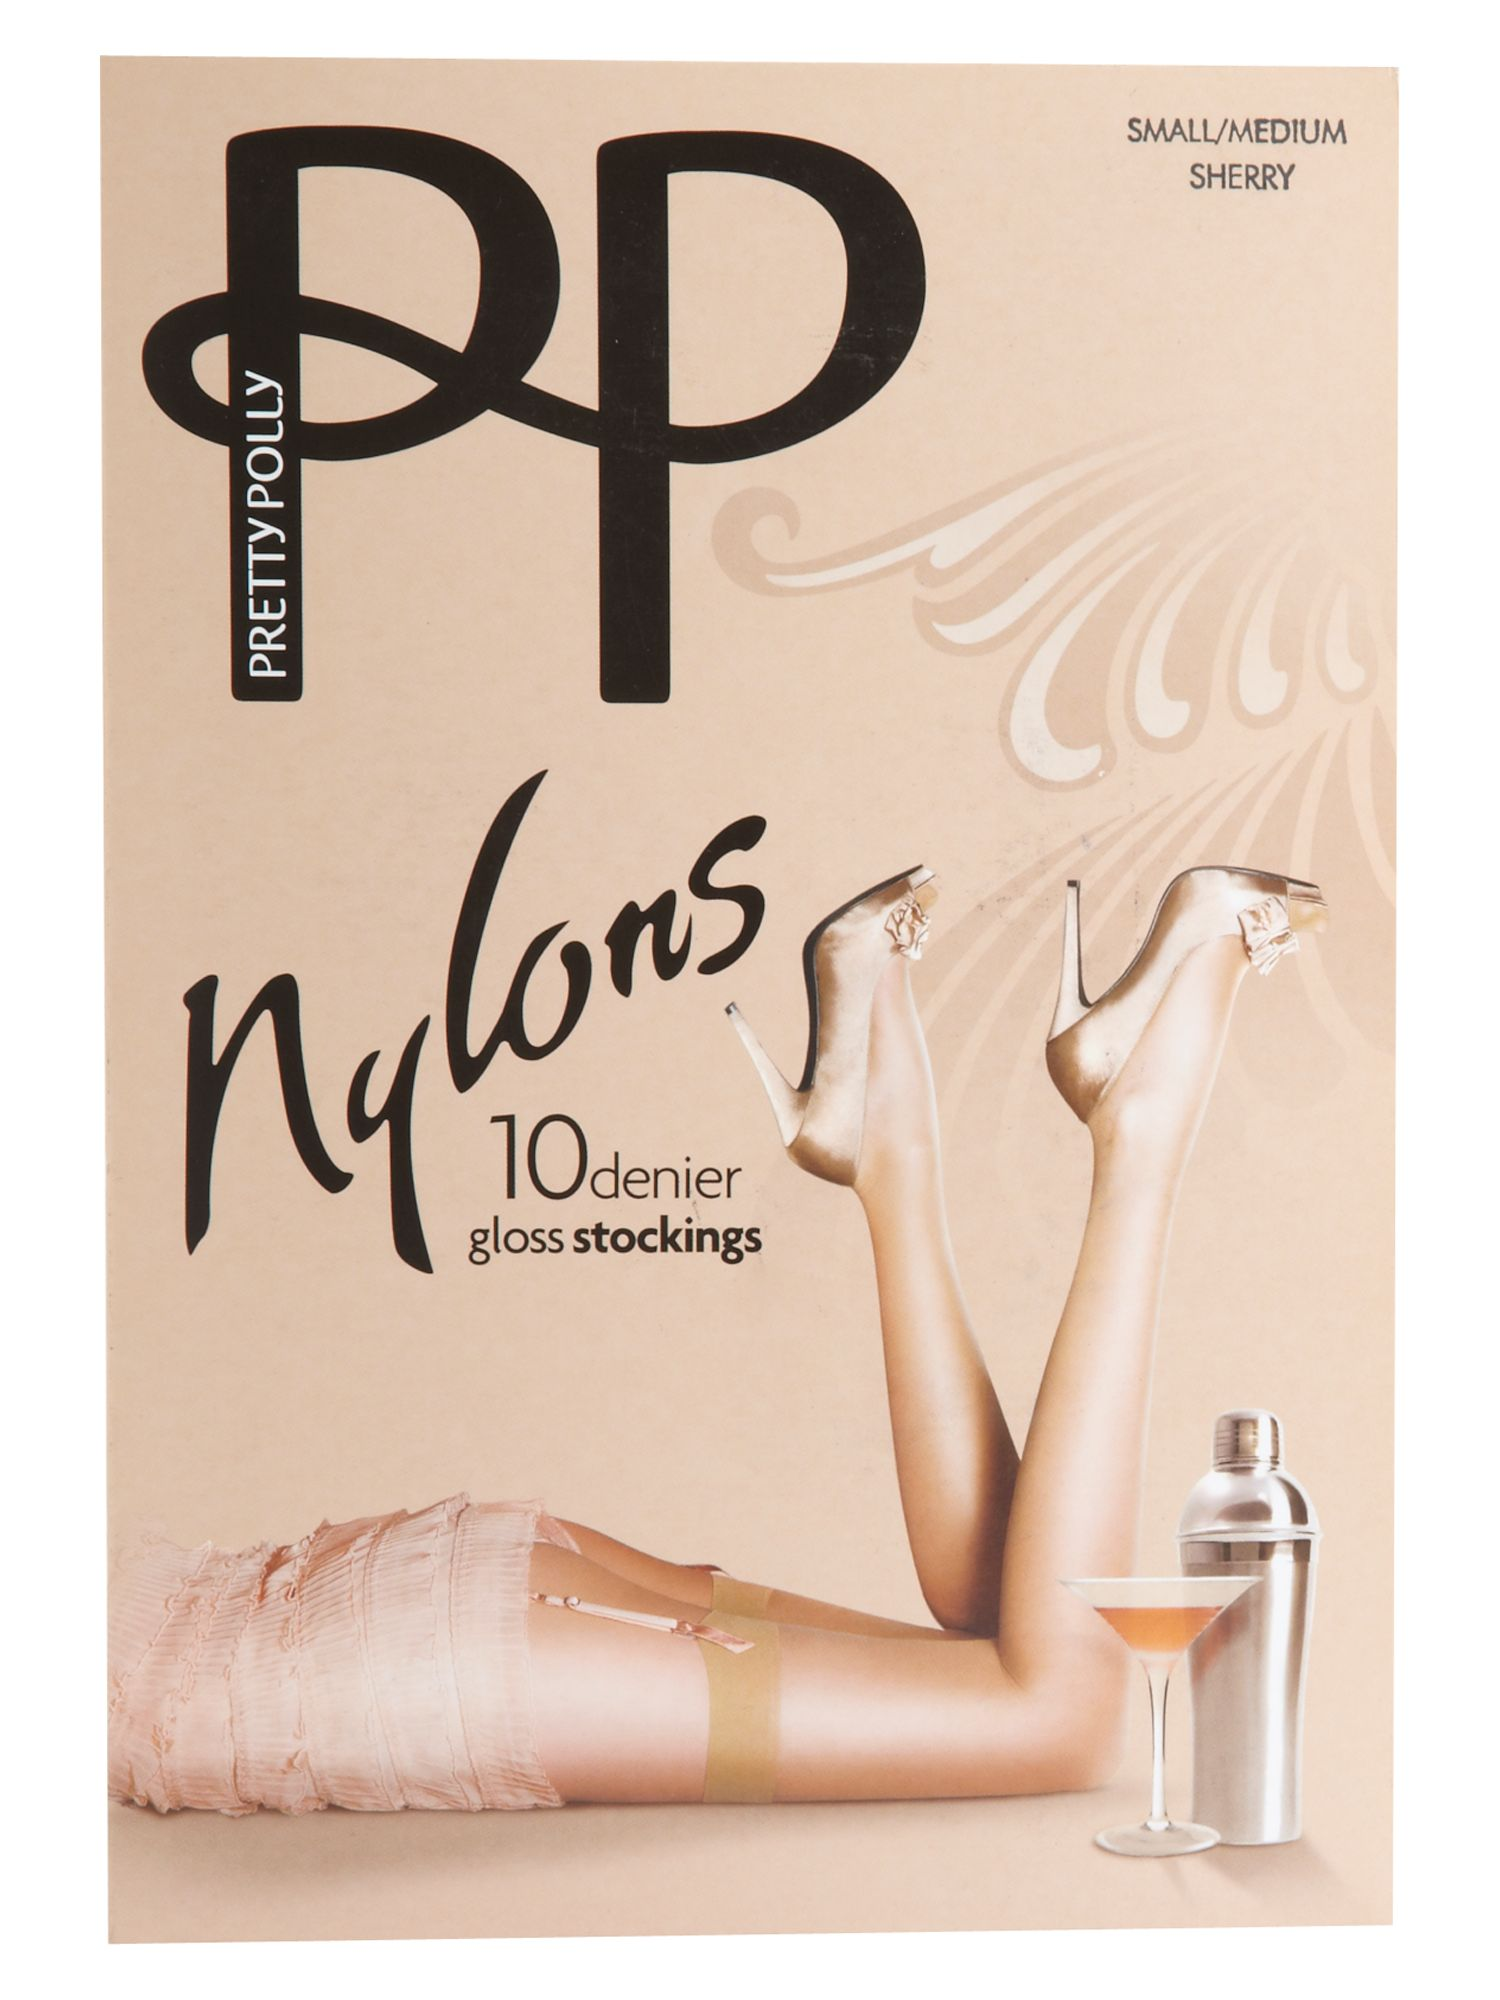 10 den nylon stockings